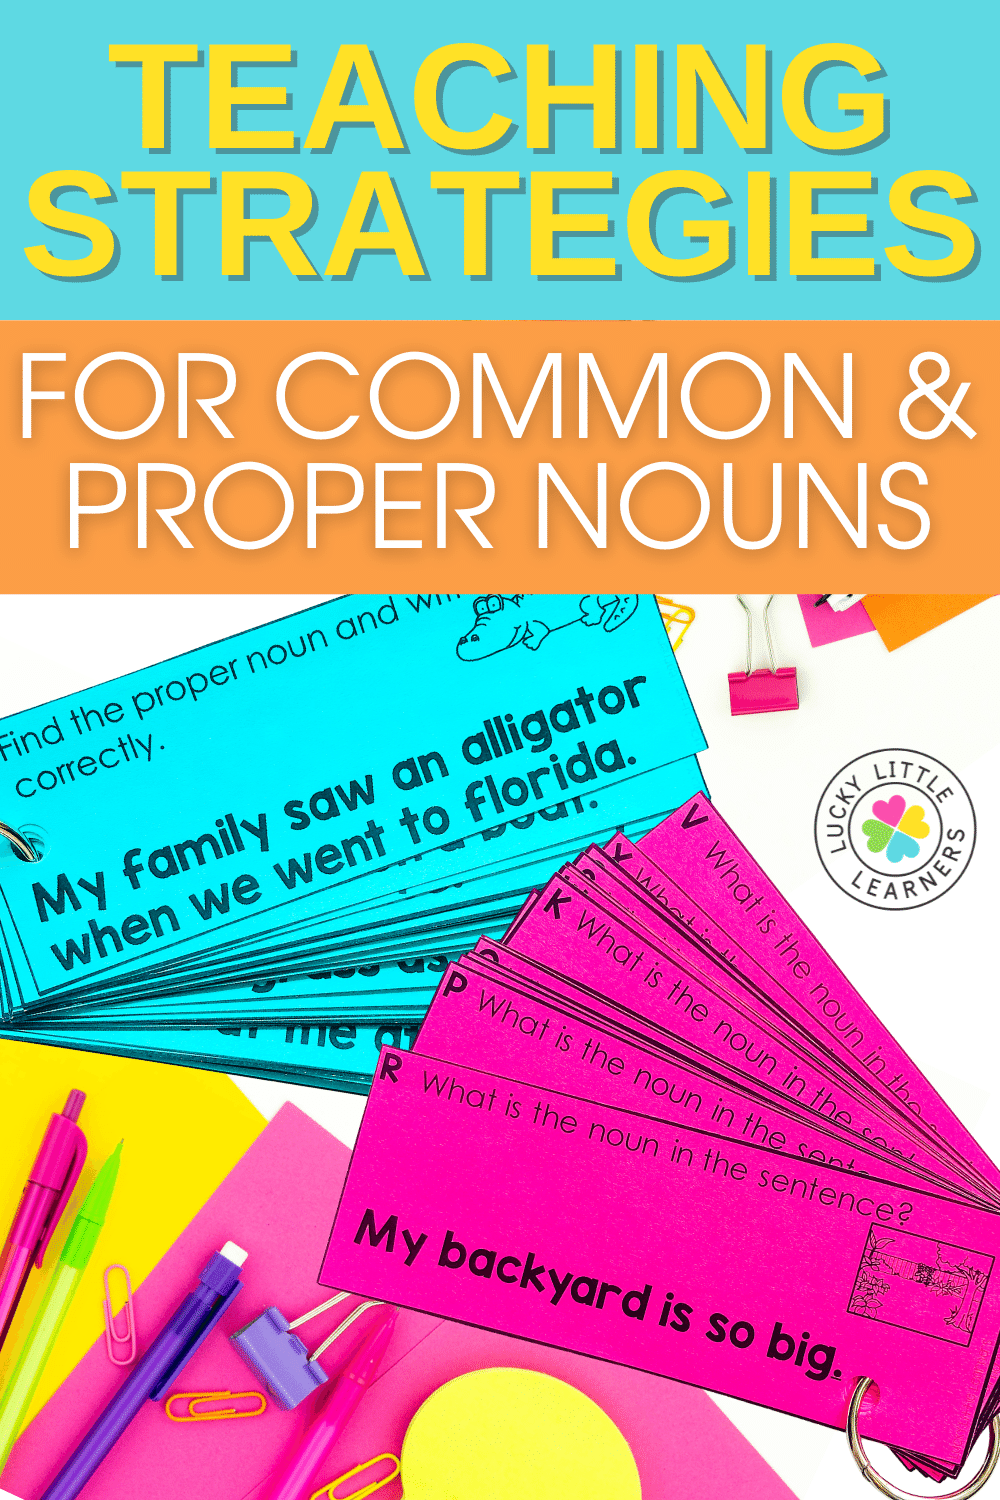 strategies for teaching common and proper nouns